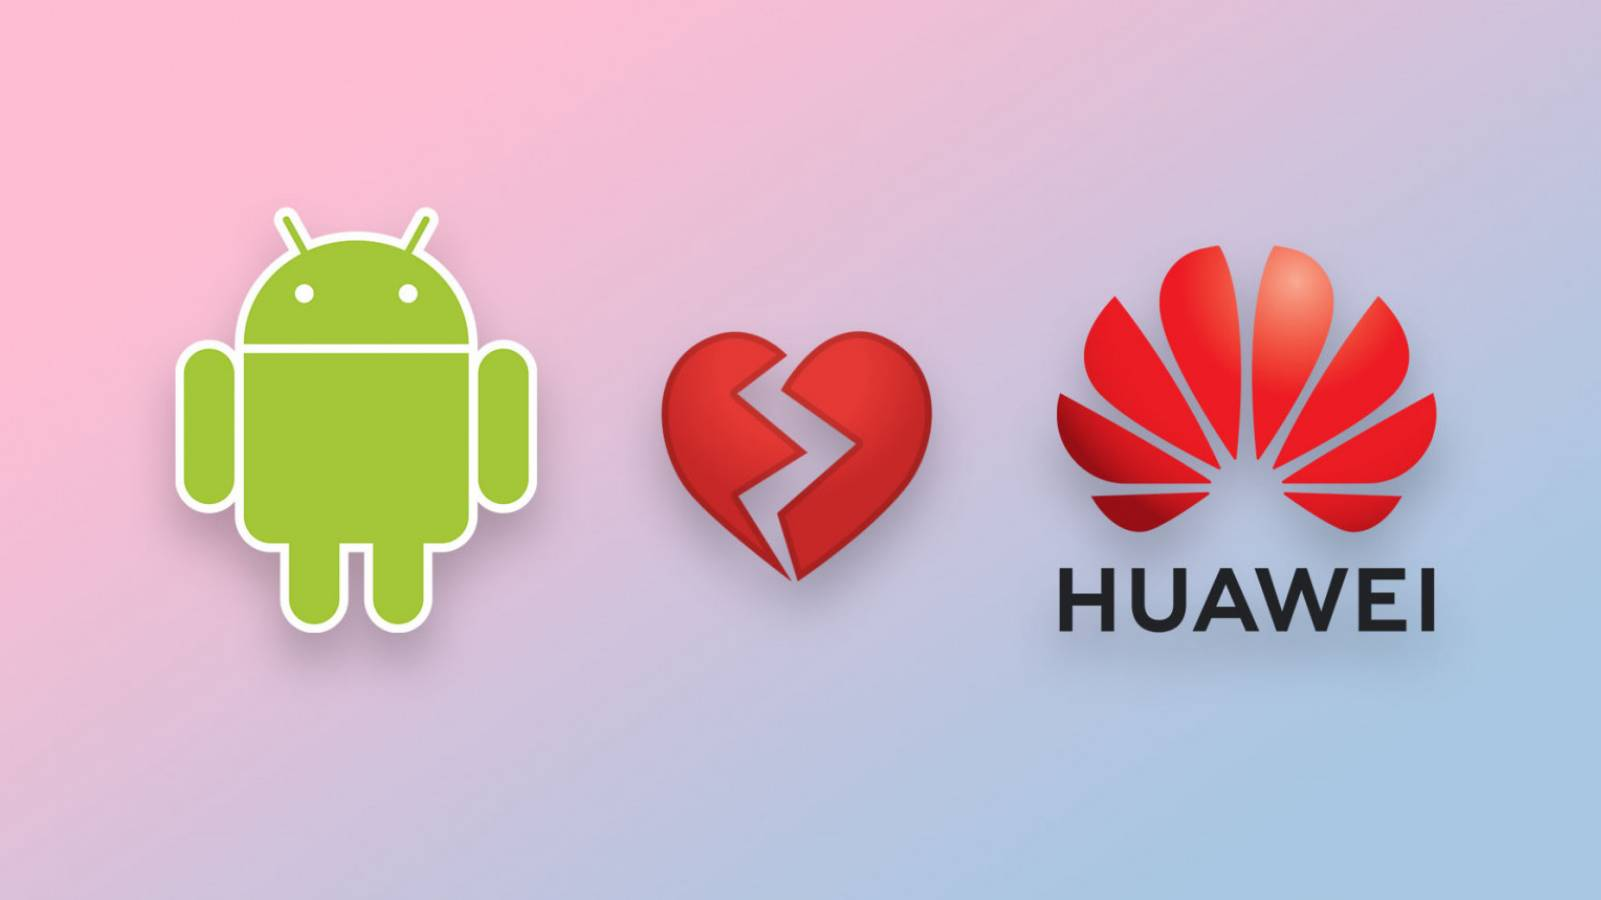 Google Android x Huawei